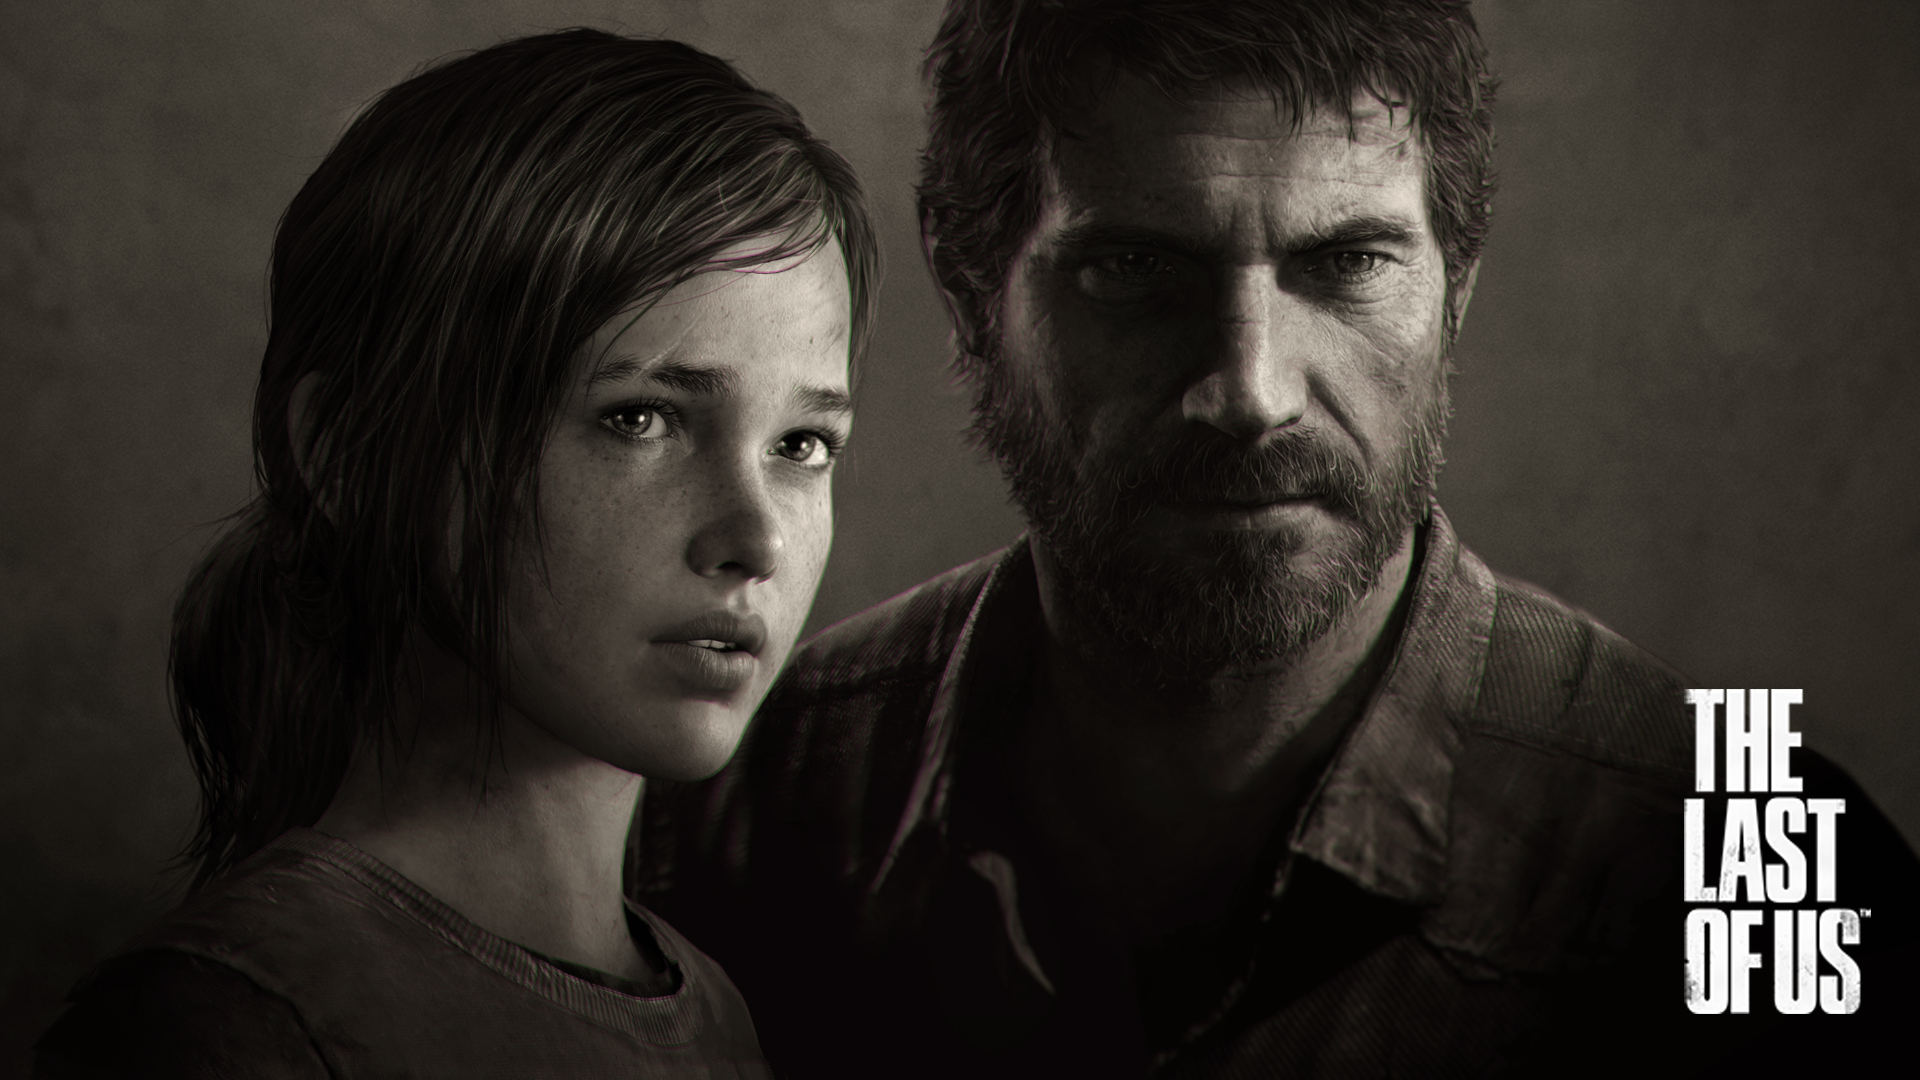 The Last of Us wallpaper 8 1920x1080